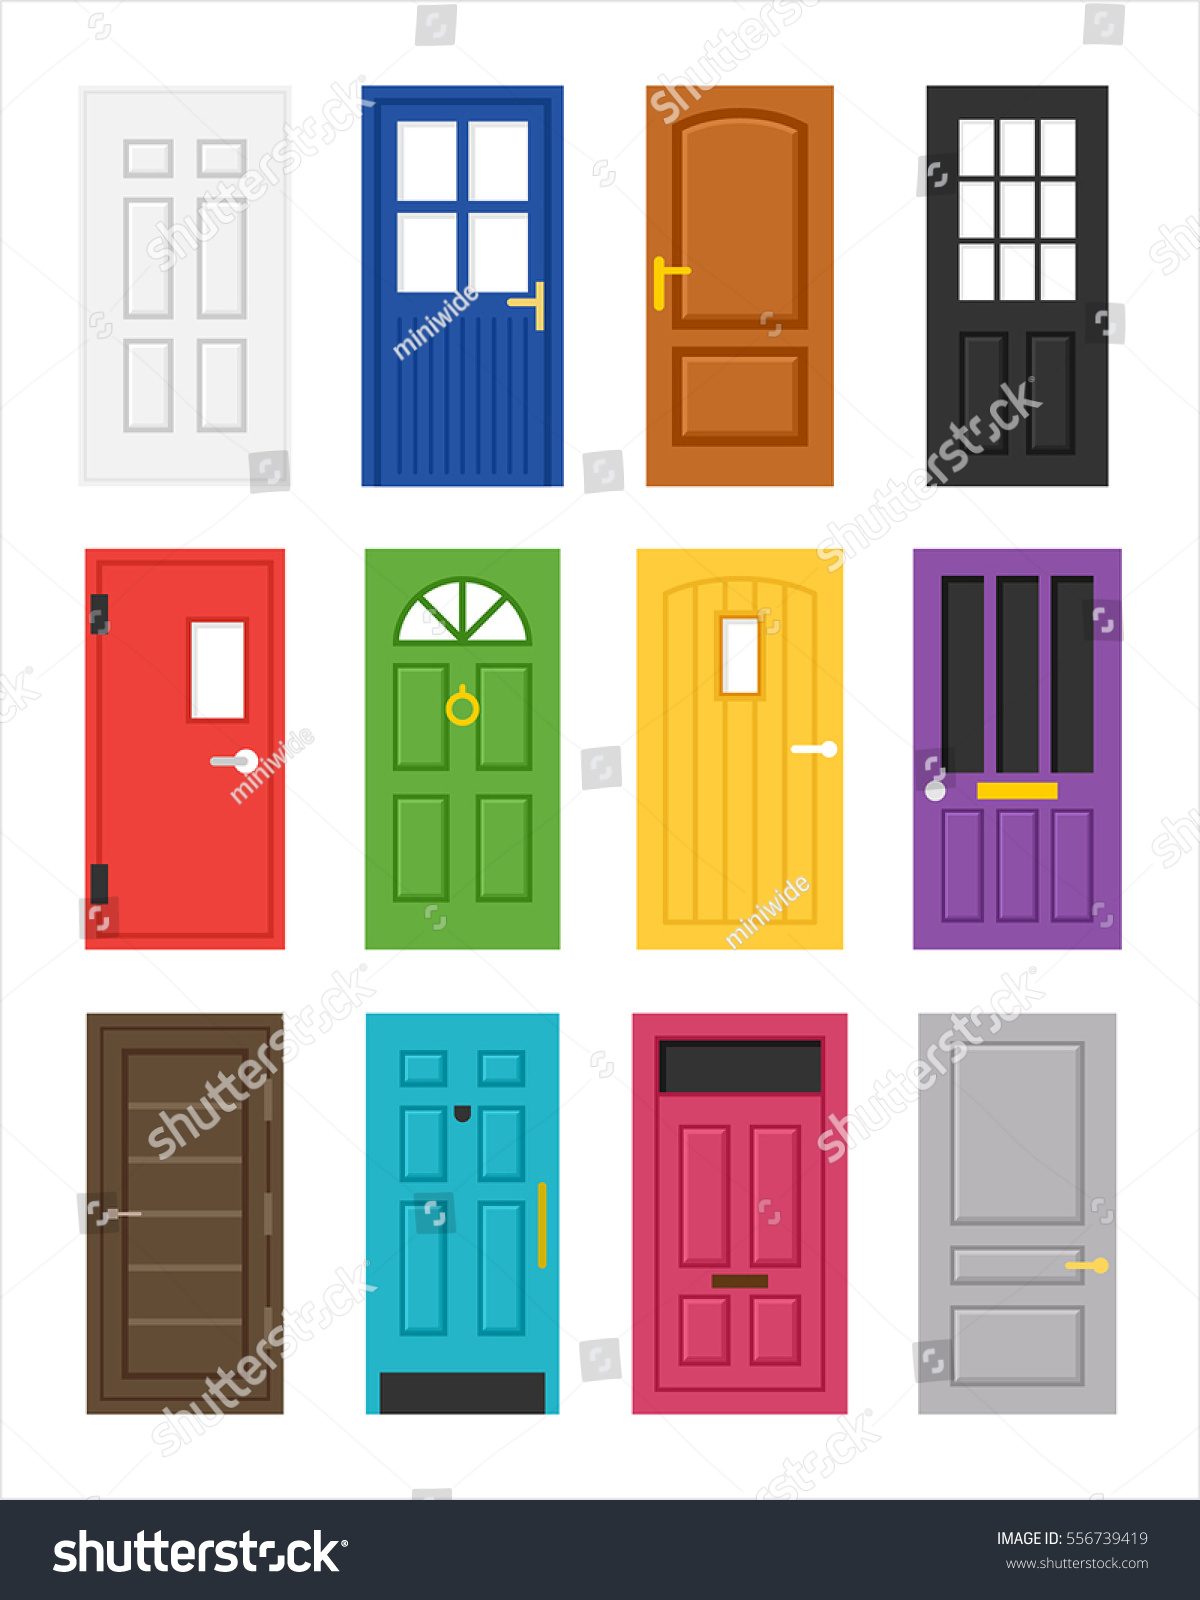 doors style ideas paint door glazed for of interior decor styles image hot modern home